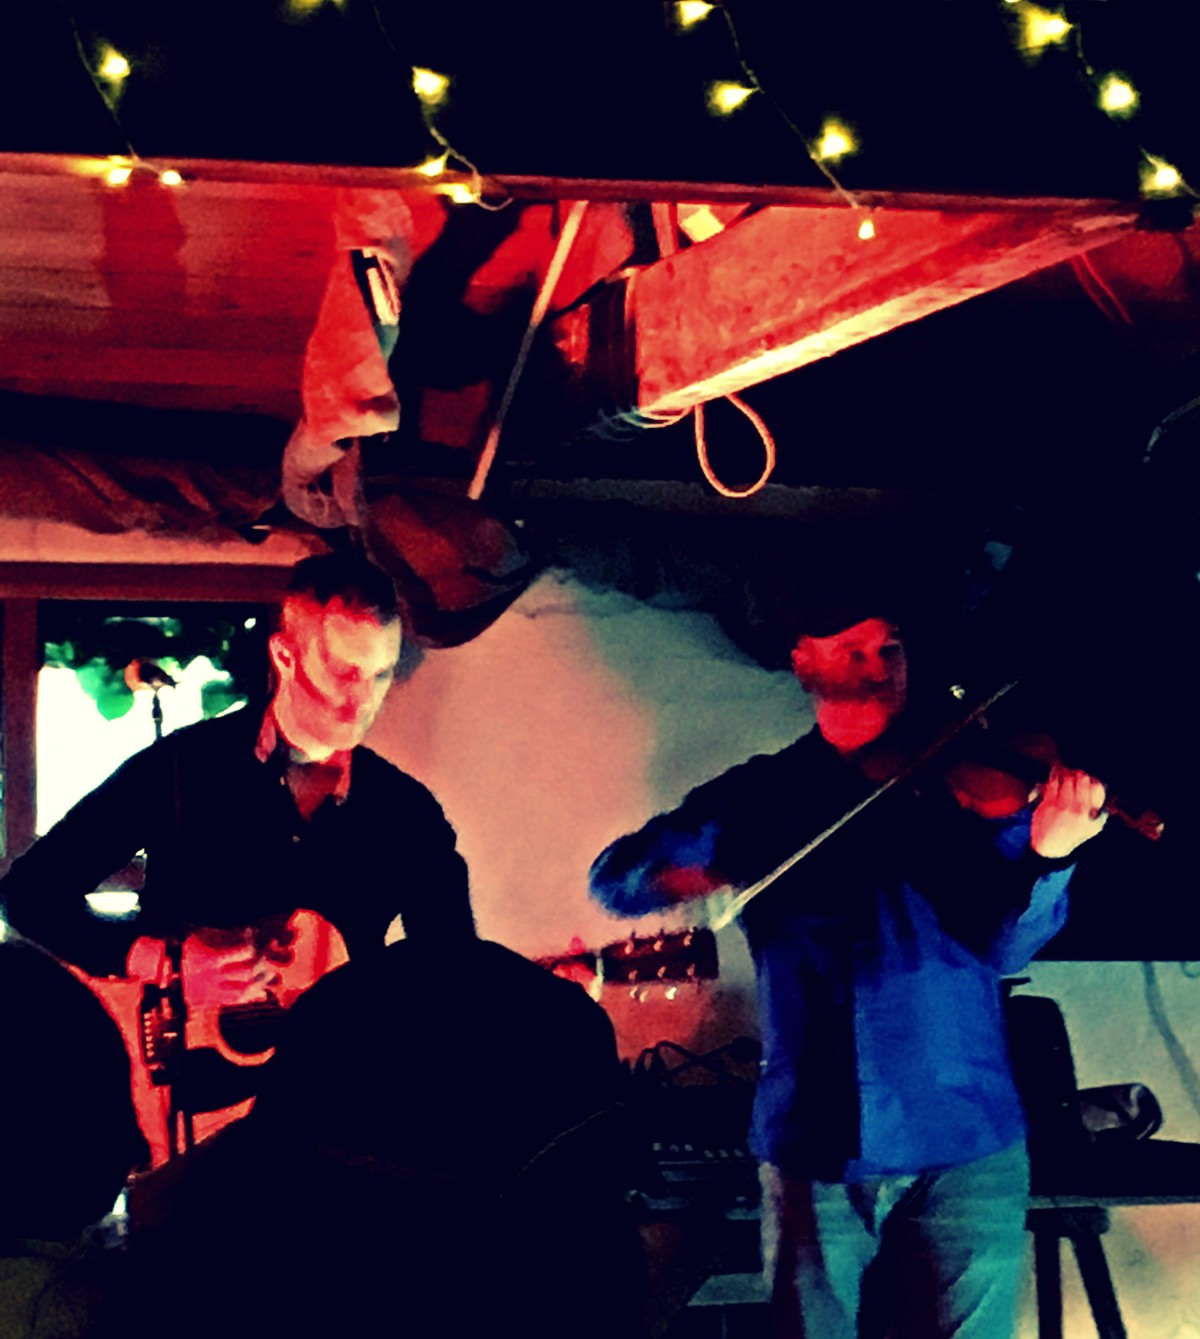 James Hickman & Dan Cassidy Played American Blues, Country & Bluegrass to The Wild Hare Set at the Serene 'De Koffie Pot' in Hereford